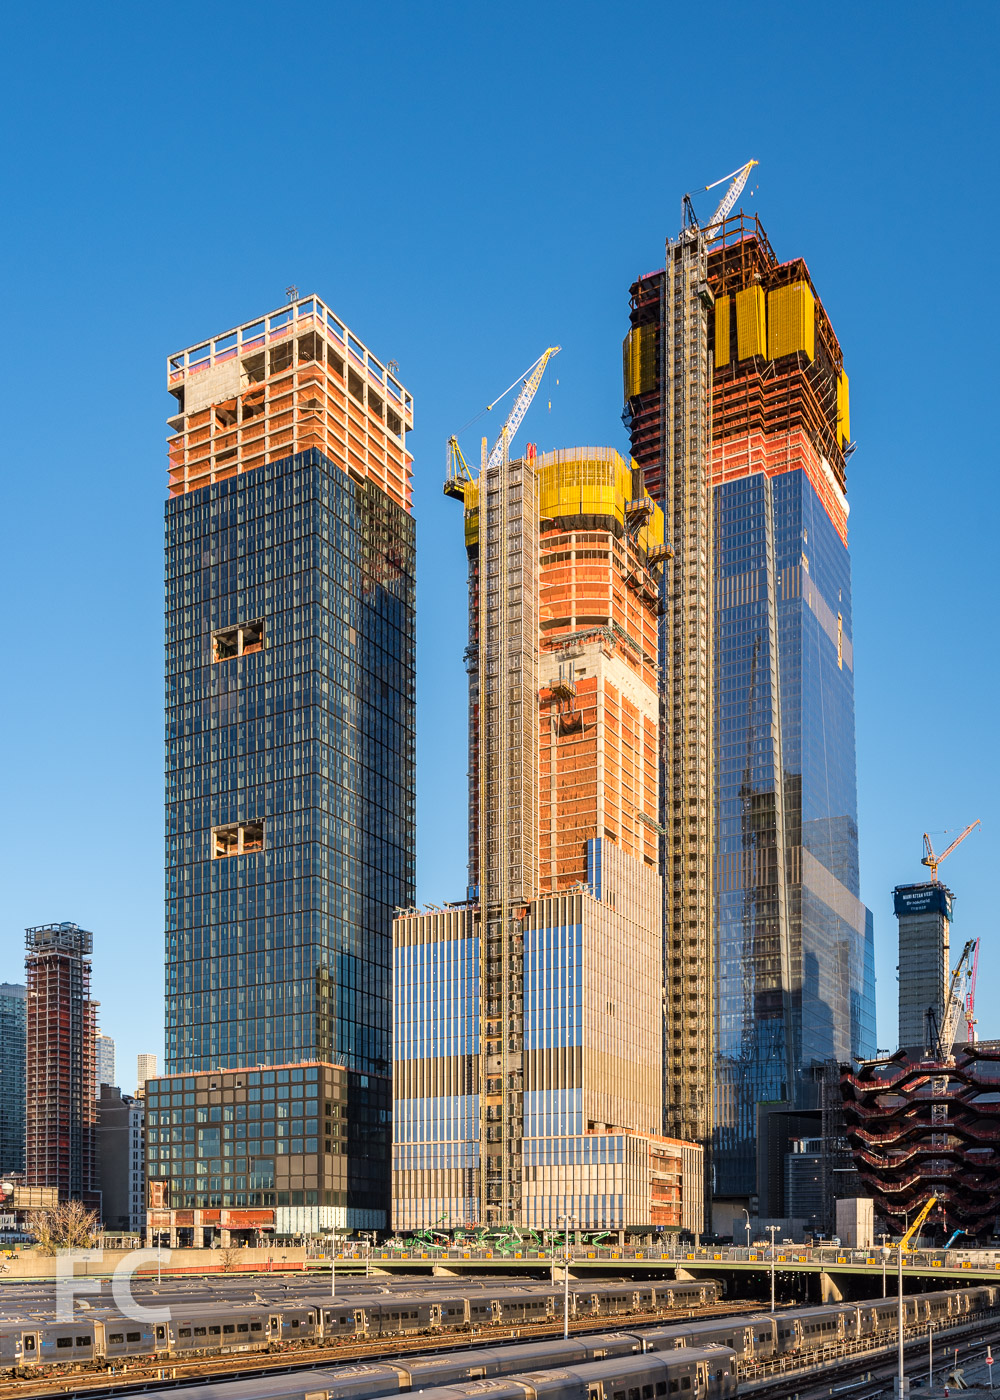 Southwest corner of 55 Hudson Yards (left), 35 Hudson Yards (center), and 30 Hudson Yards (right) from the High Line.